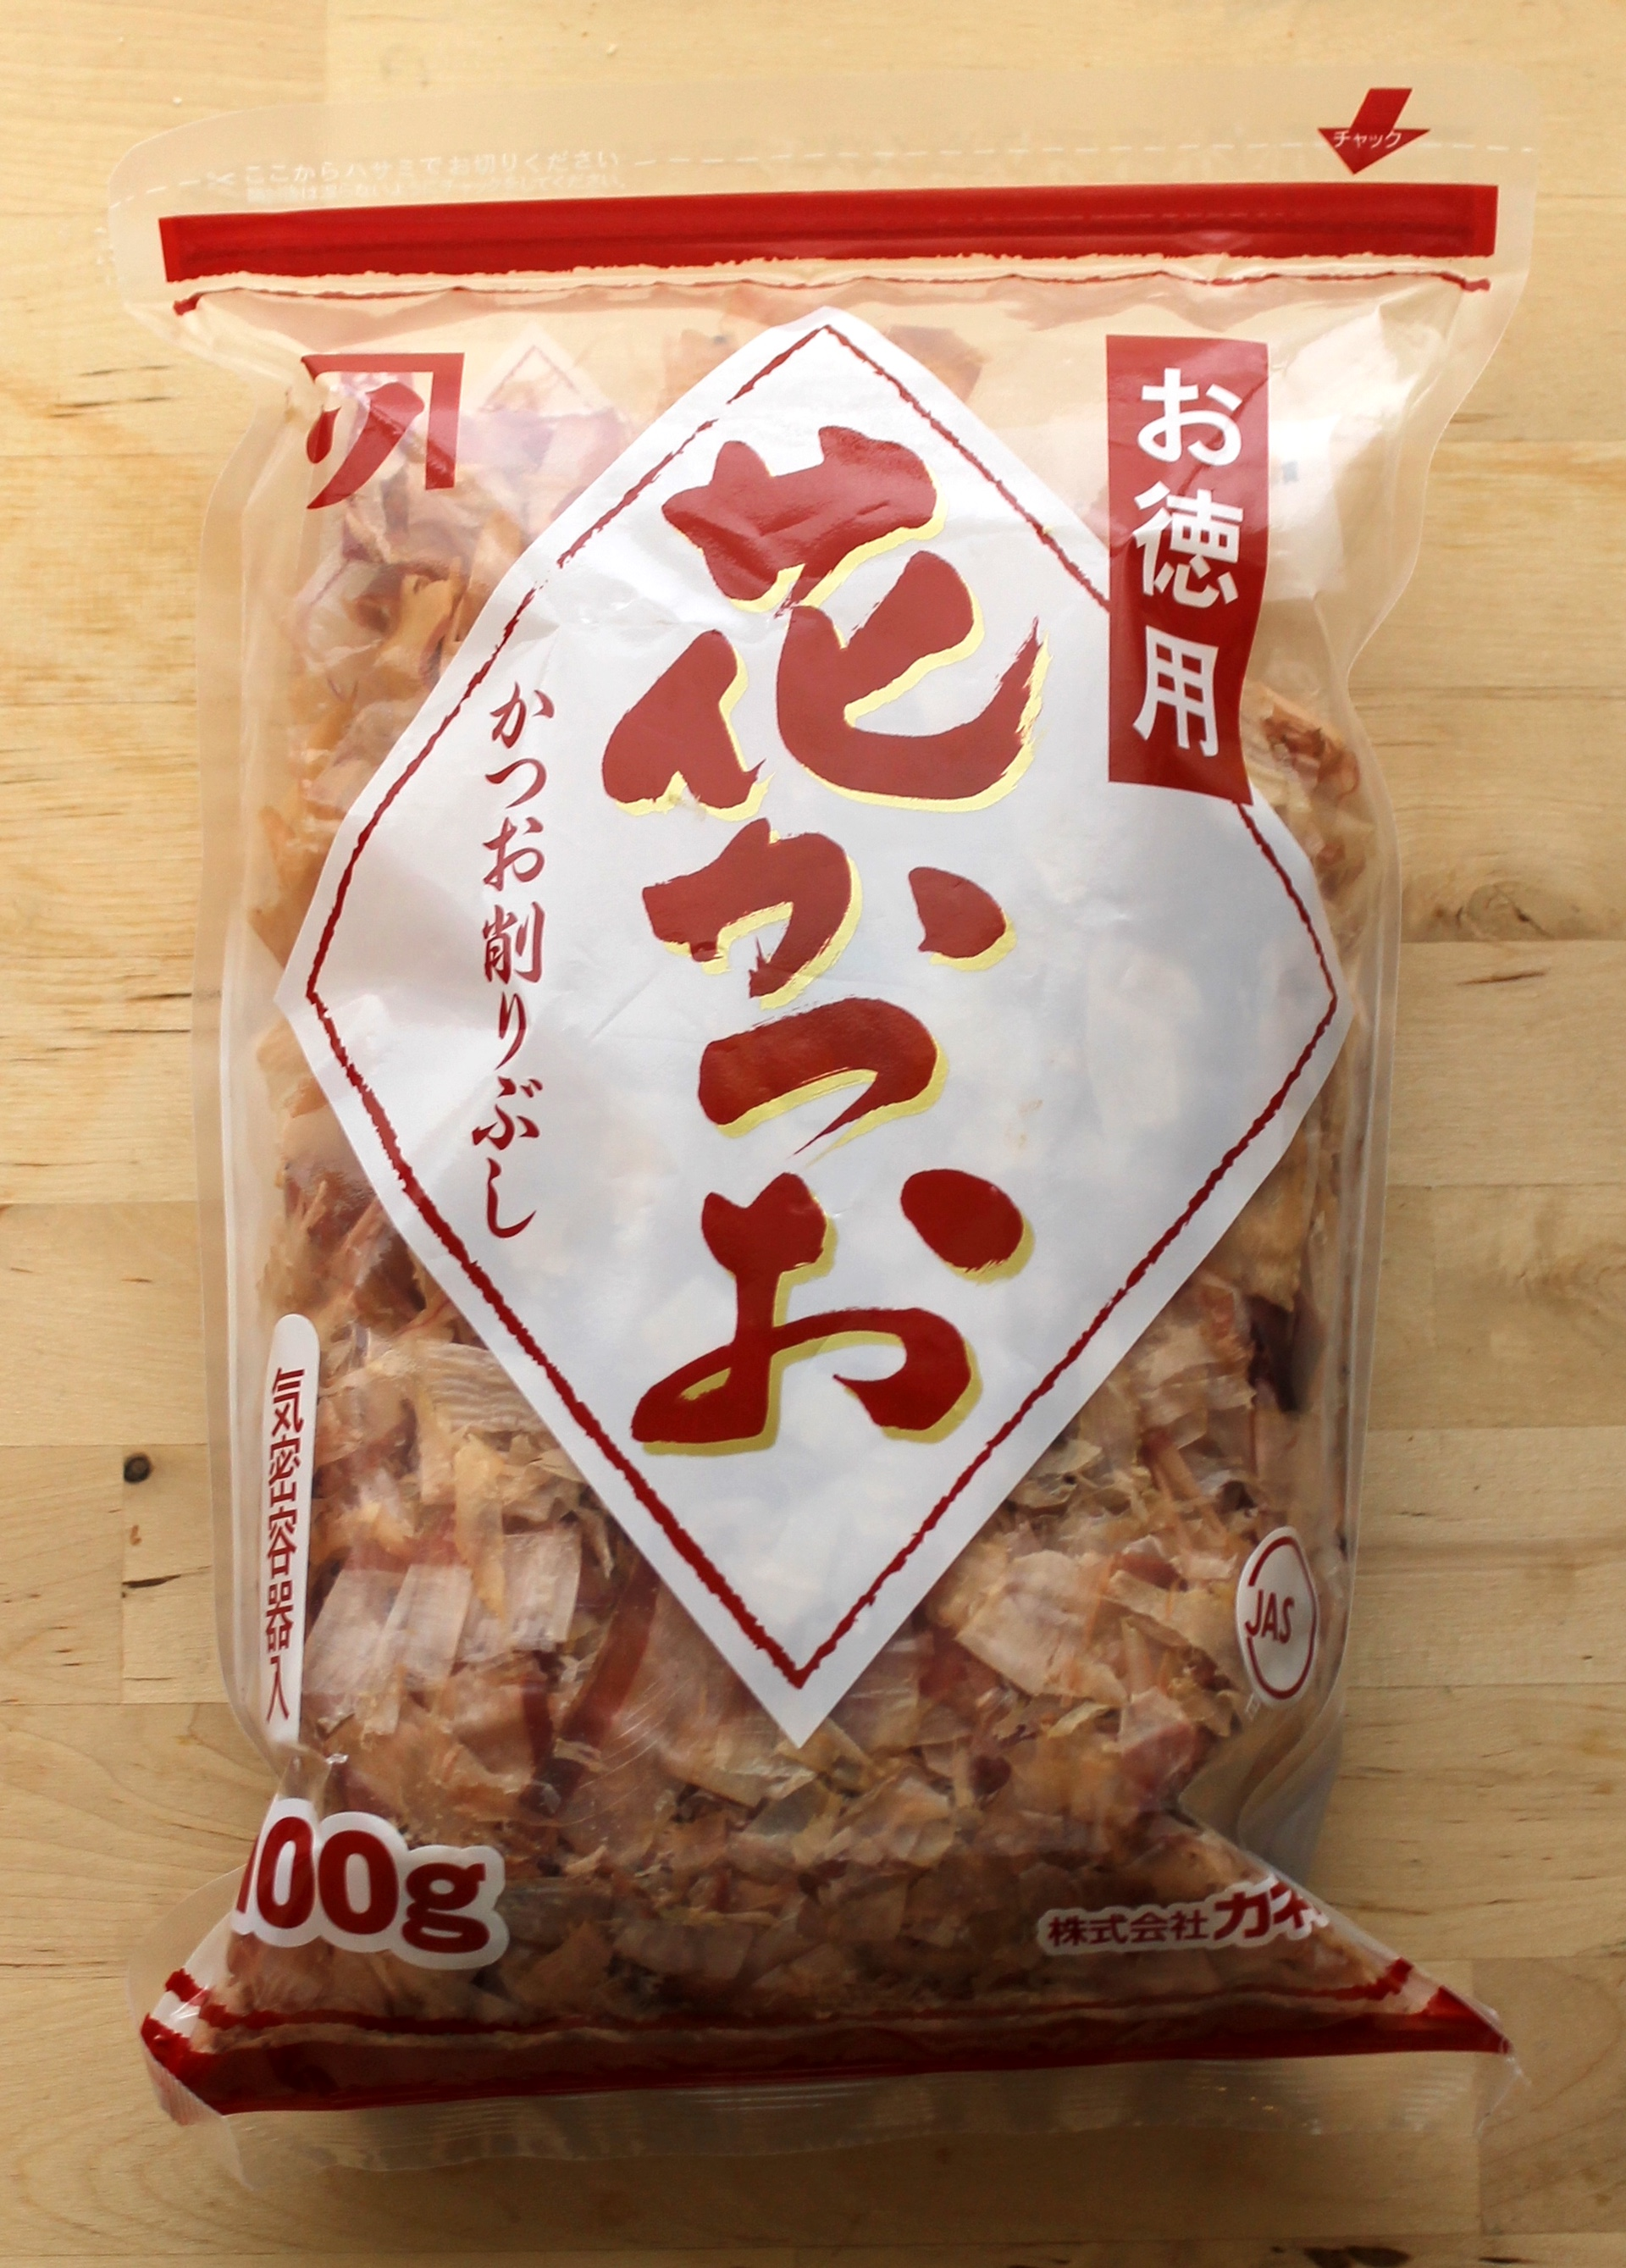 Katsuobushi is flaked cured bonito tuna. It is also traditionally used in dashi stock.